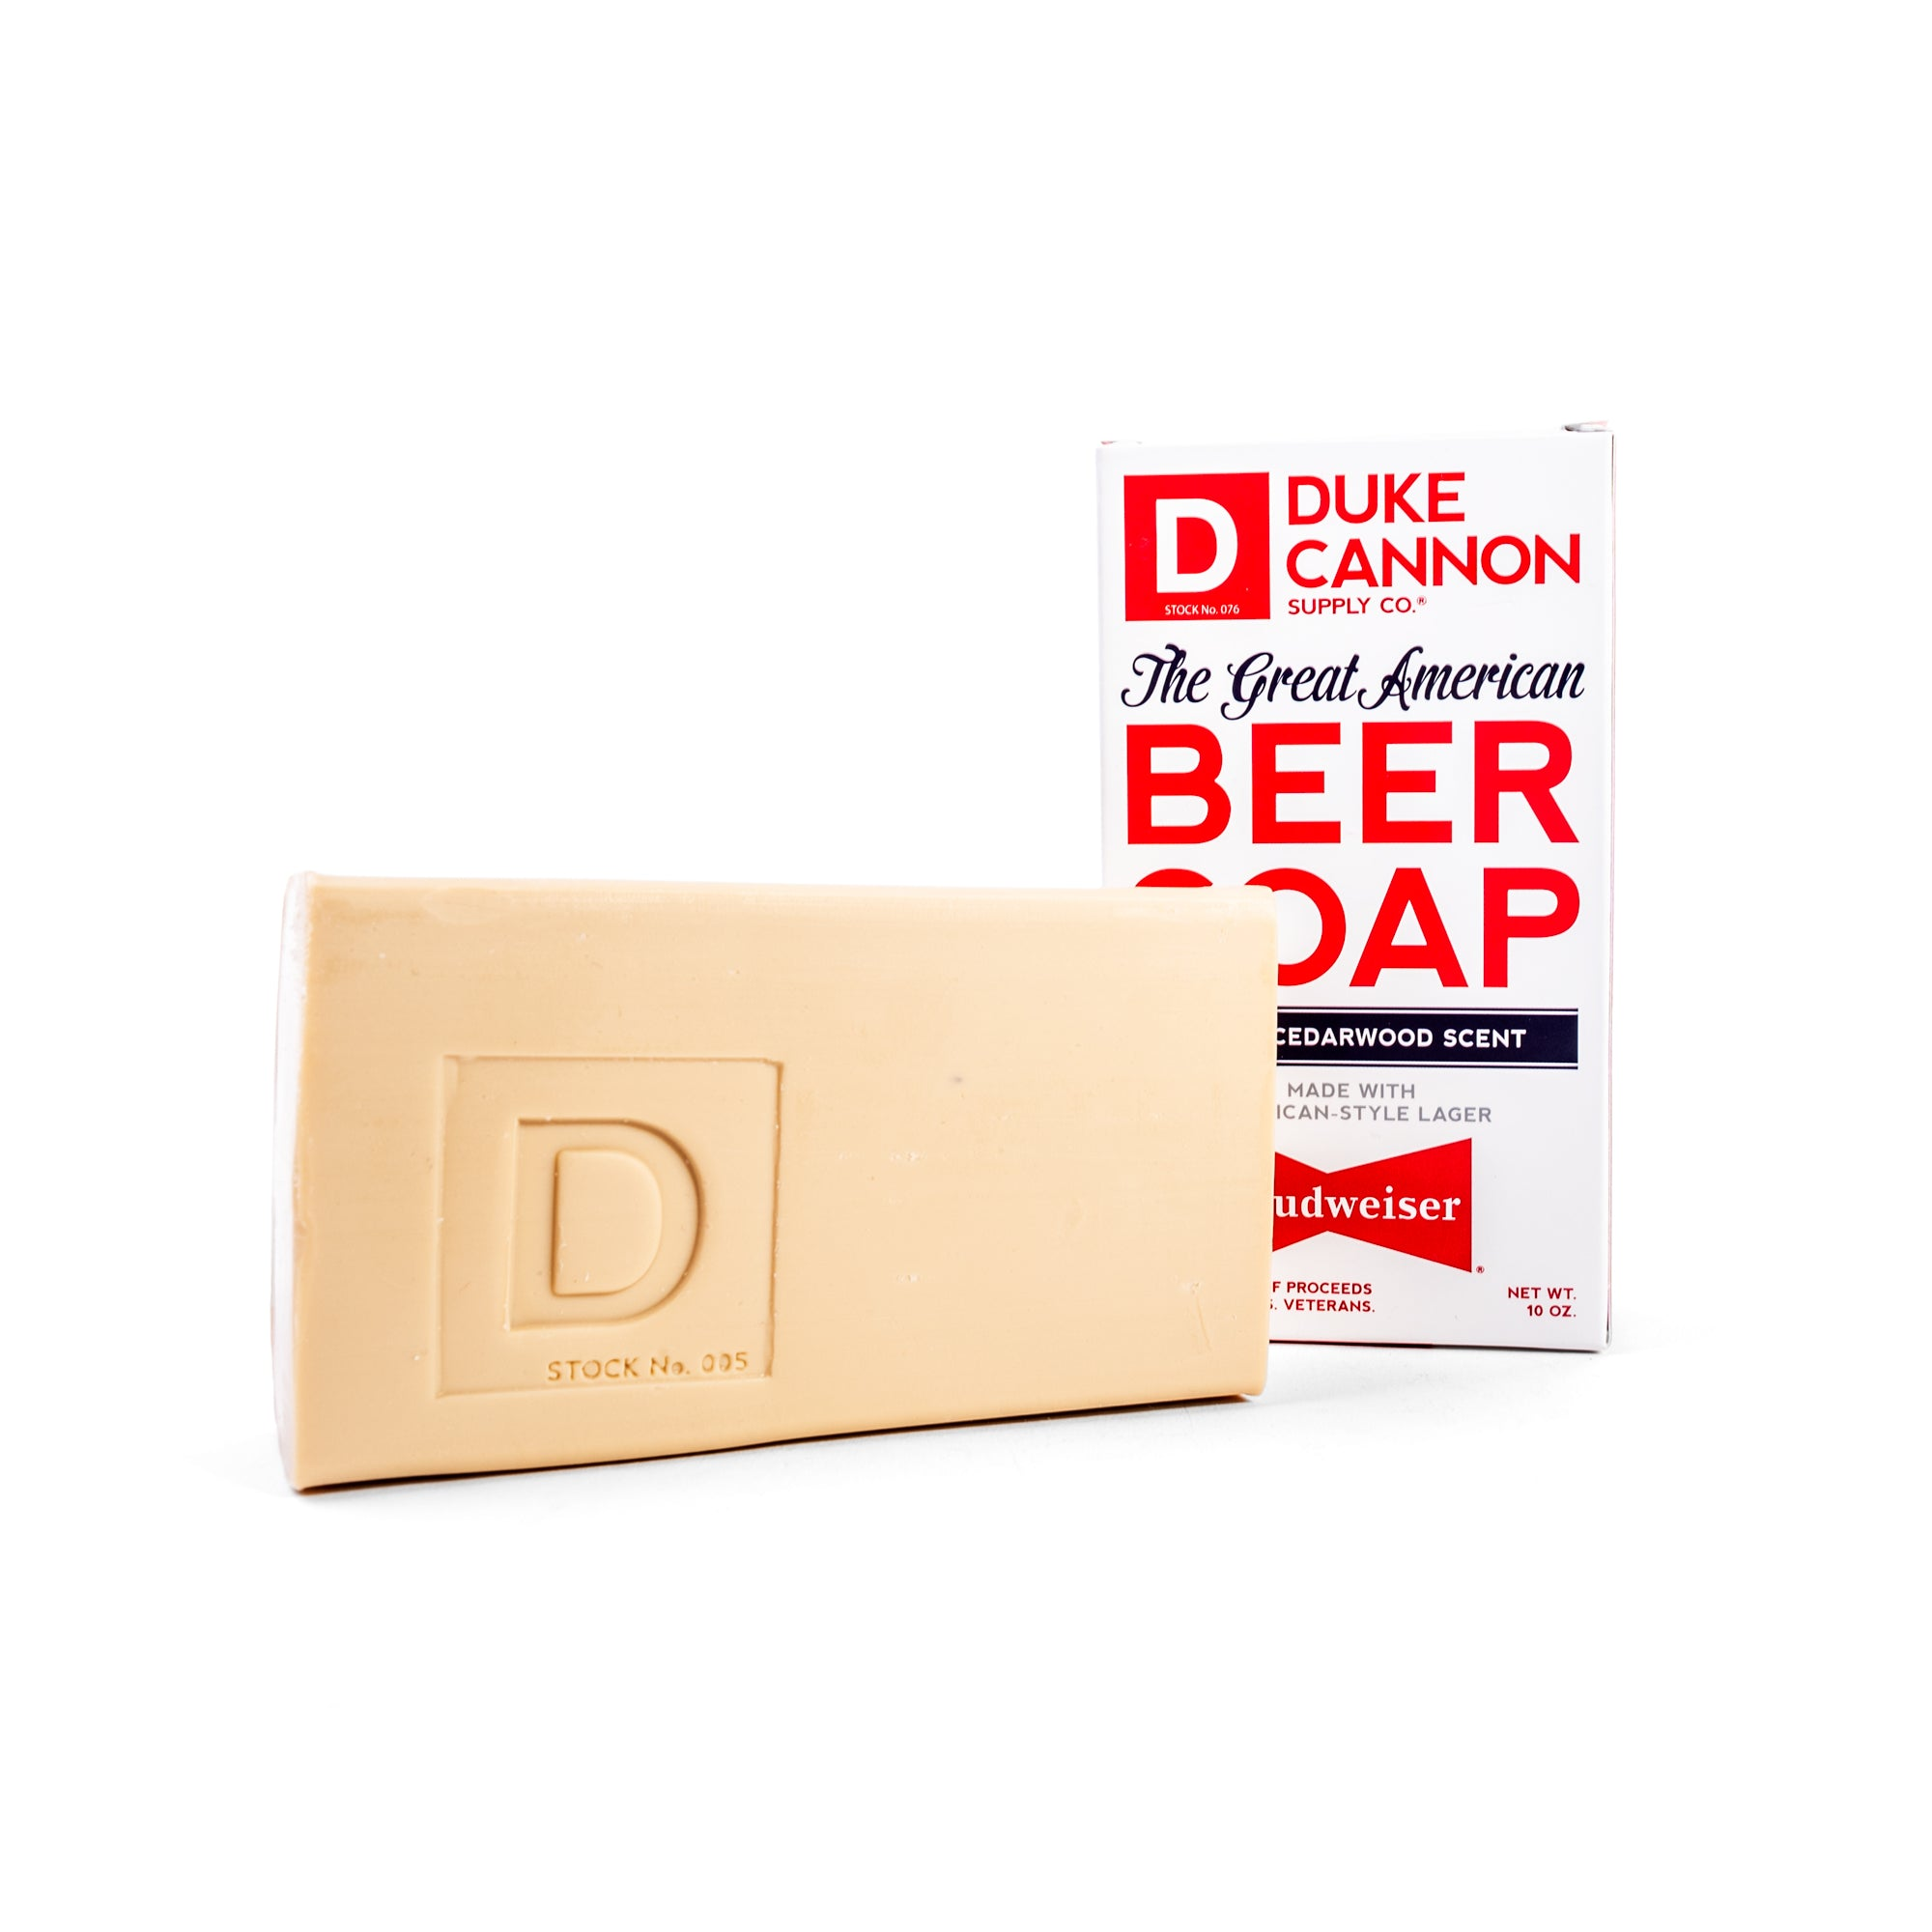 Great American Beer Soap - Made with Budweiser - Duke Cannon